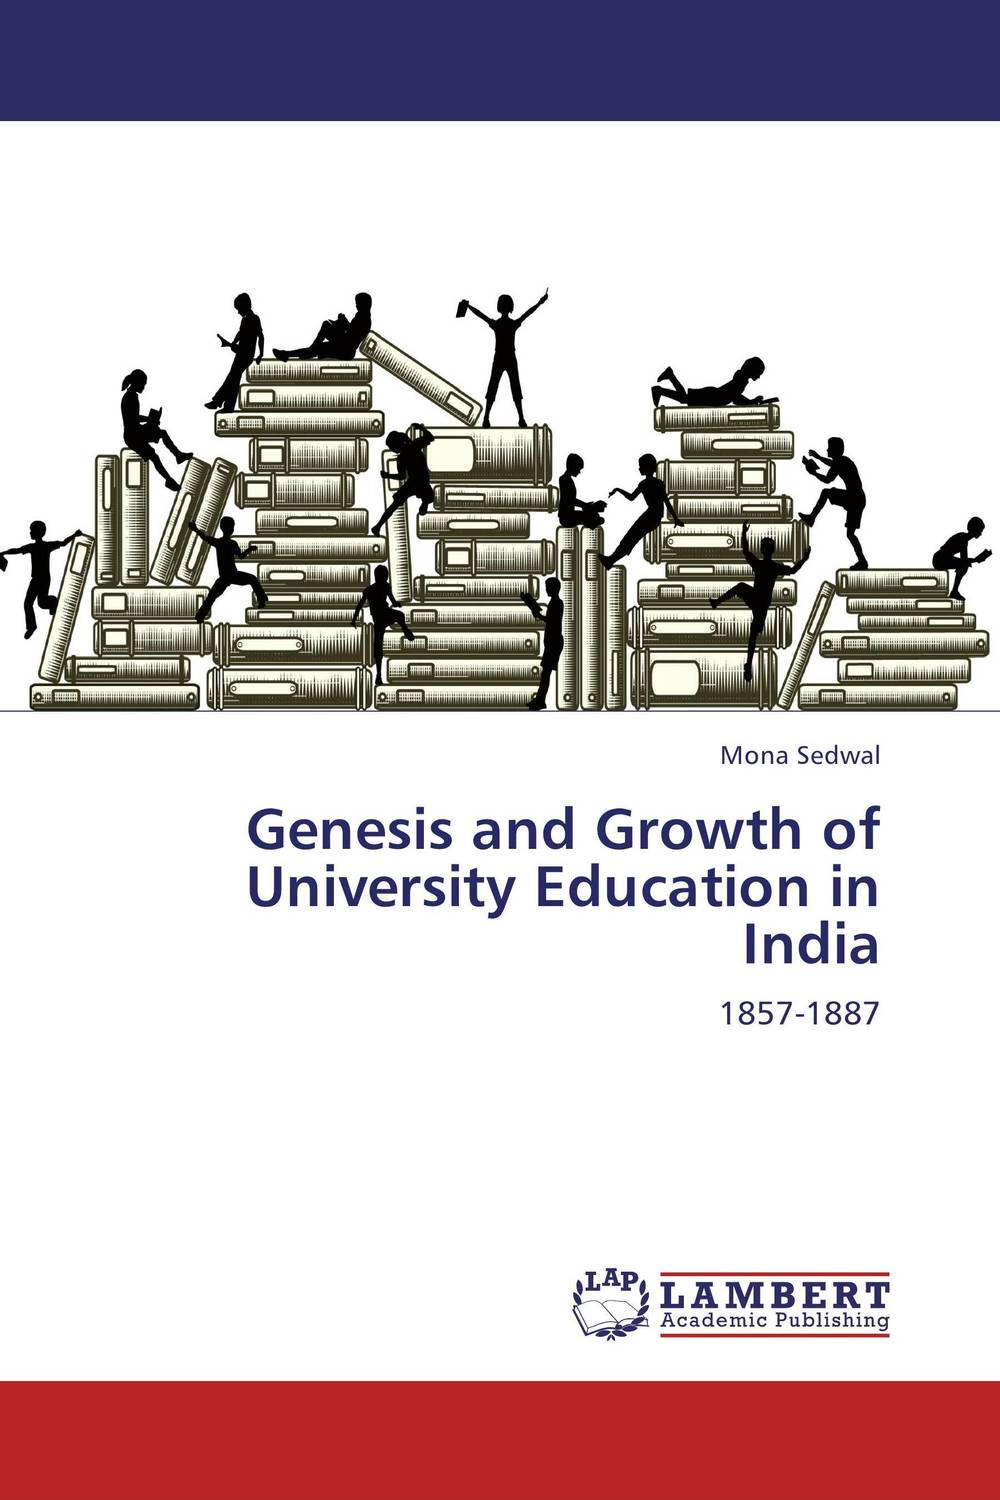 Genesis and Growth of University Education in India genesis genesis turn it on again the hits